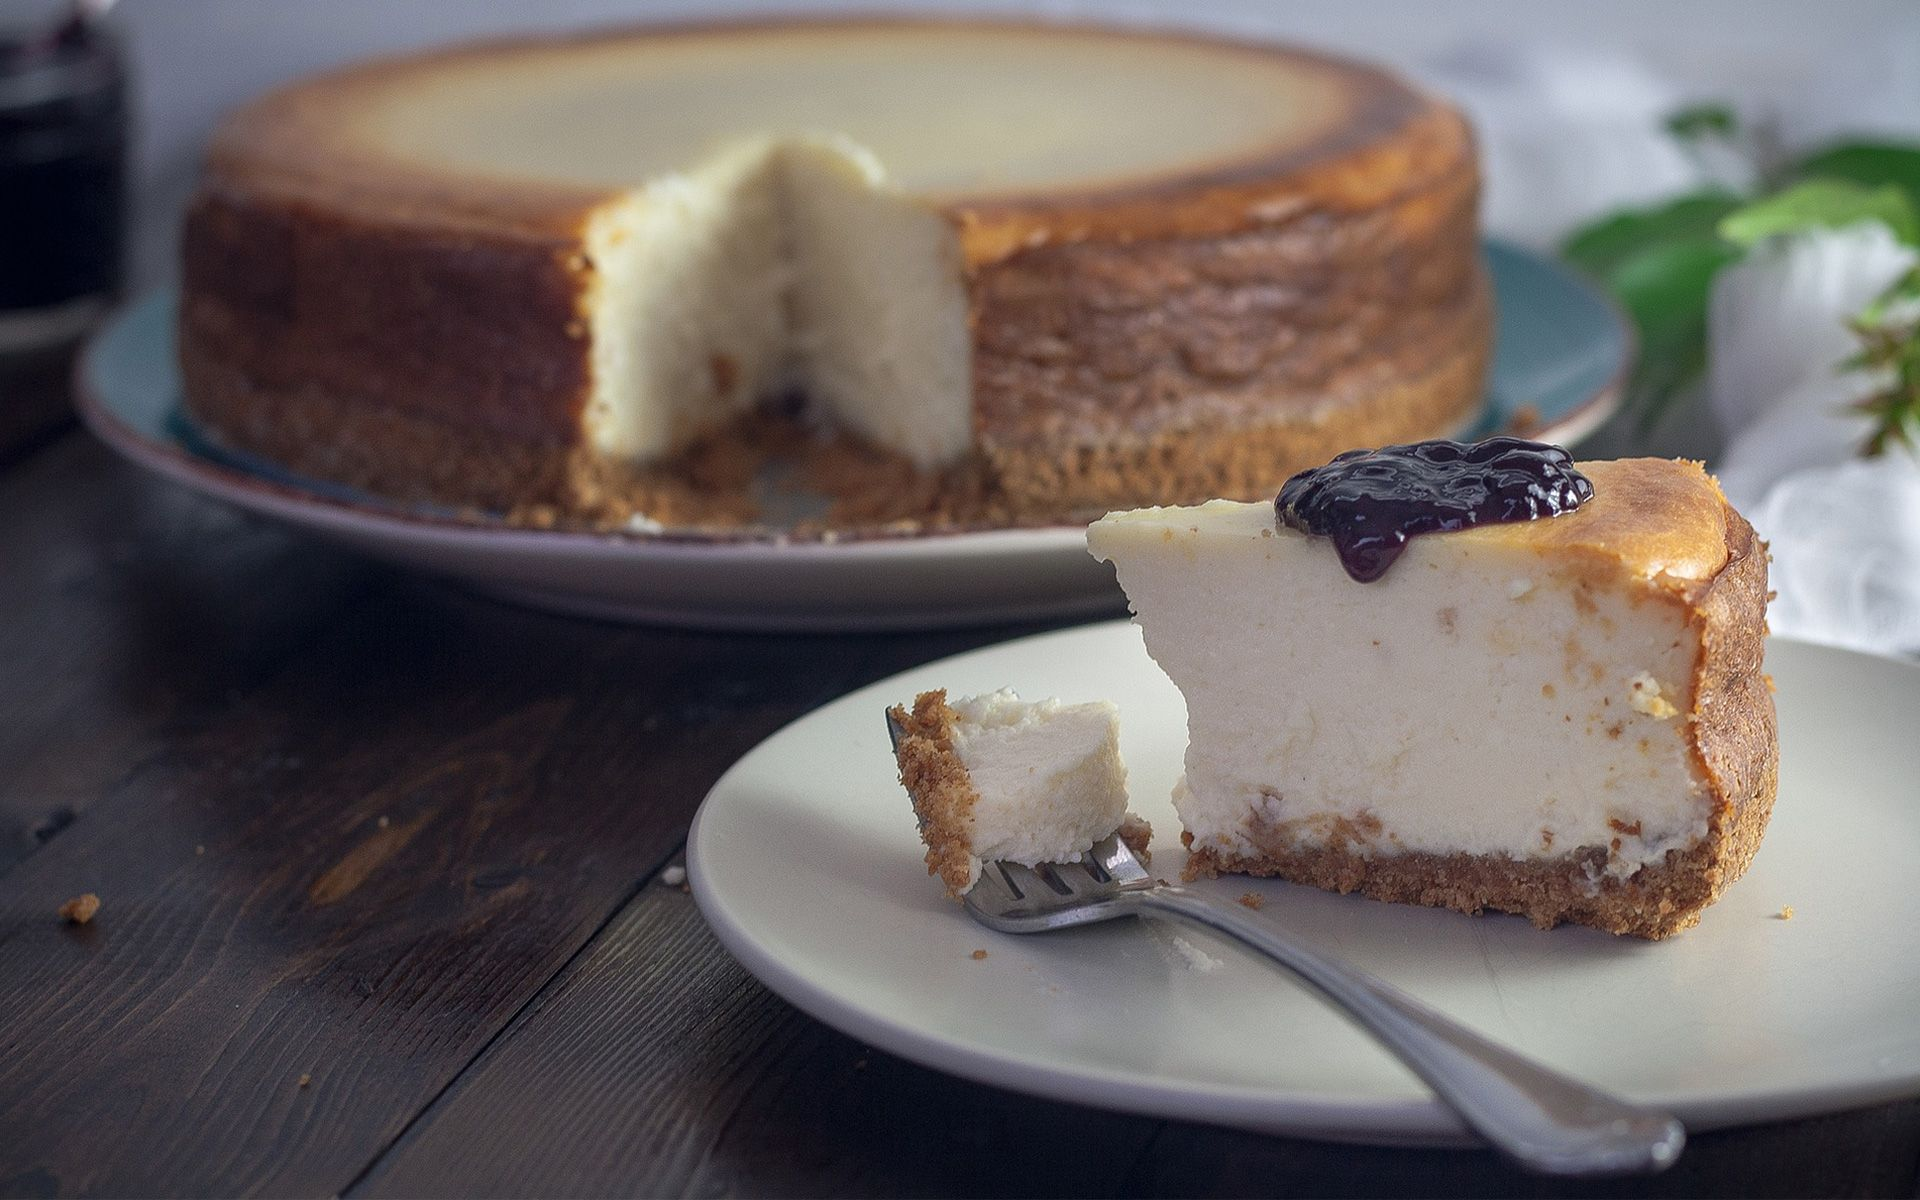 5 Cheesecakes So Good You Need To Share Them...Or Not